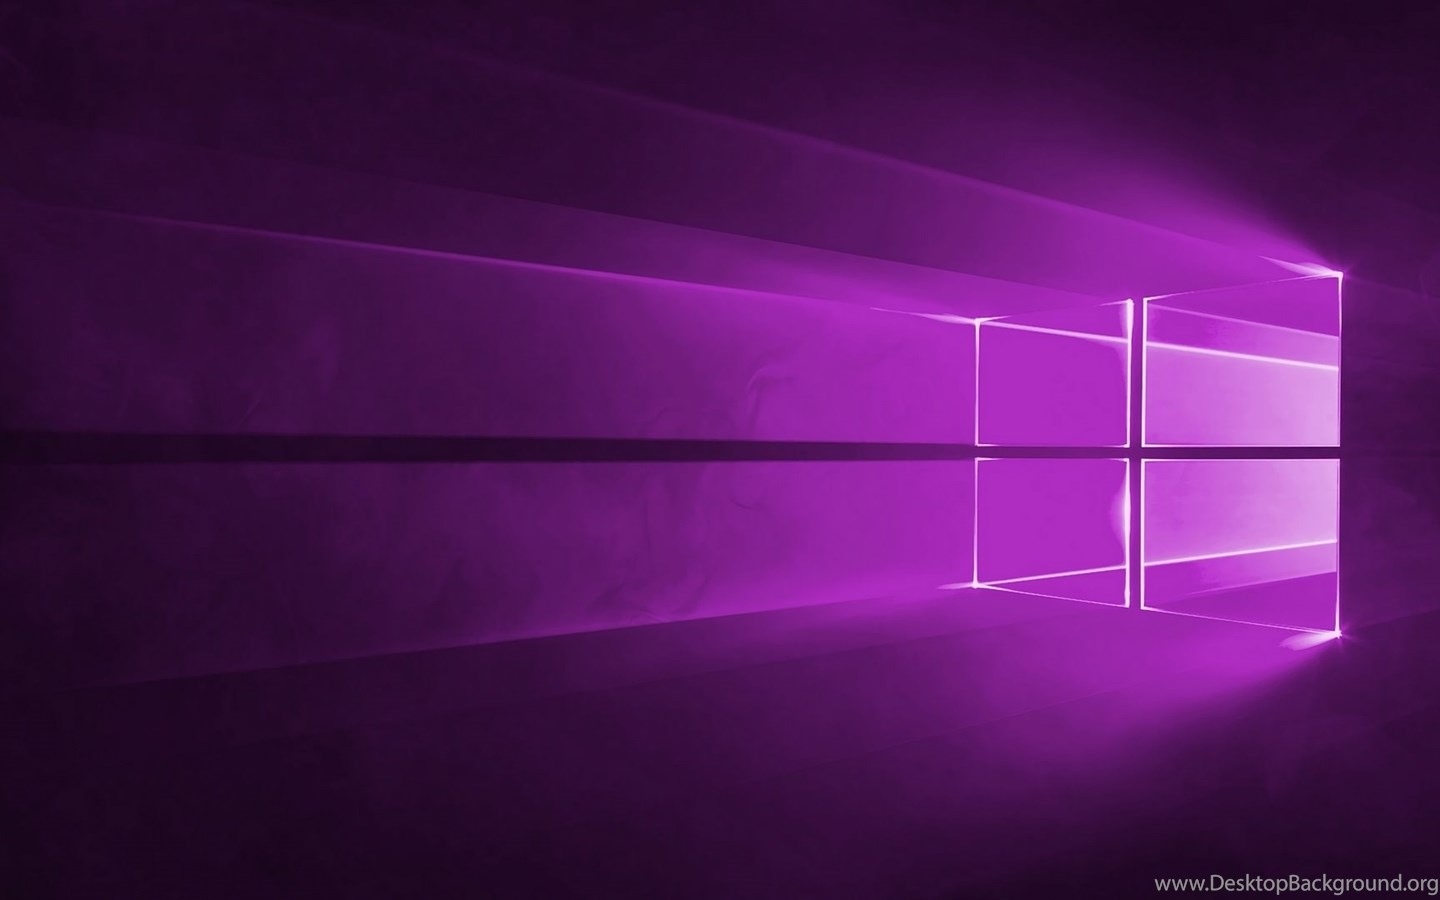 Ipod Touch Wallpaper Hd Windows 10 Wallpapers Violet Theme 1920x1080 4527 Desktop